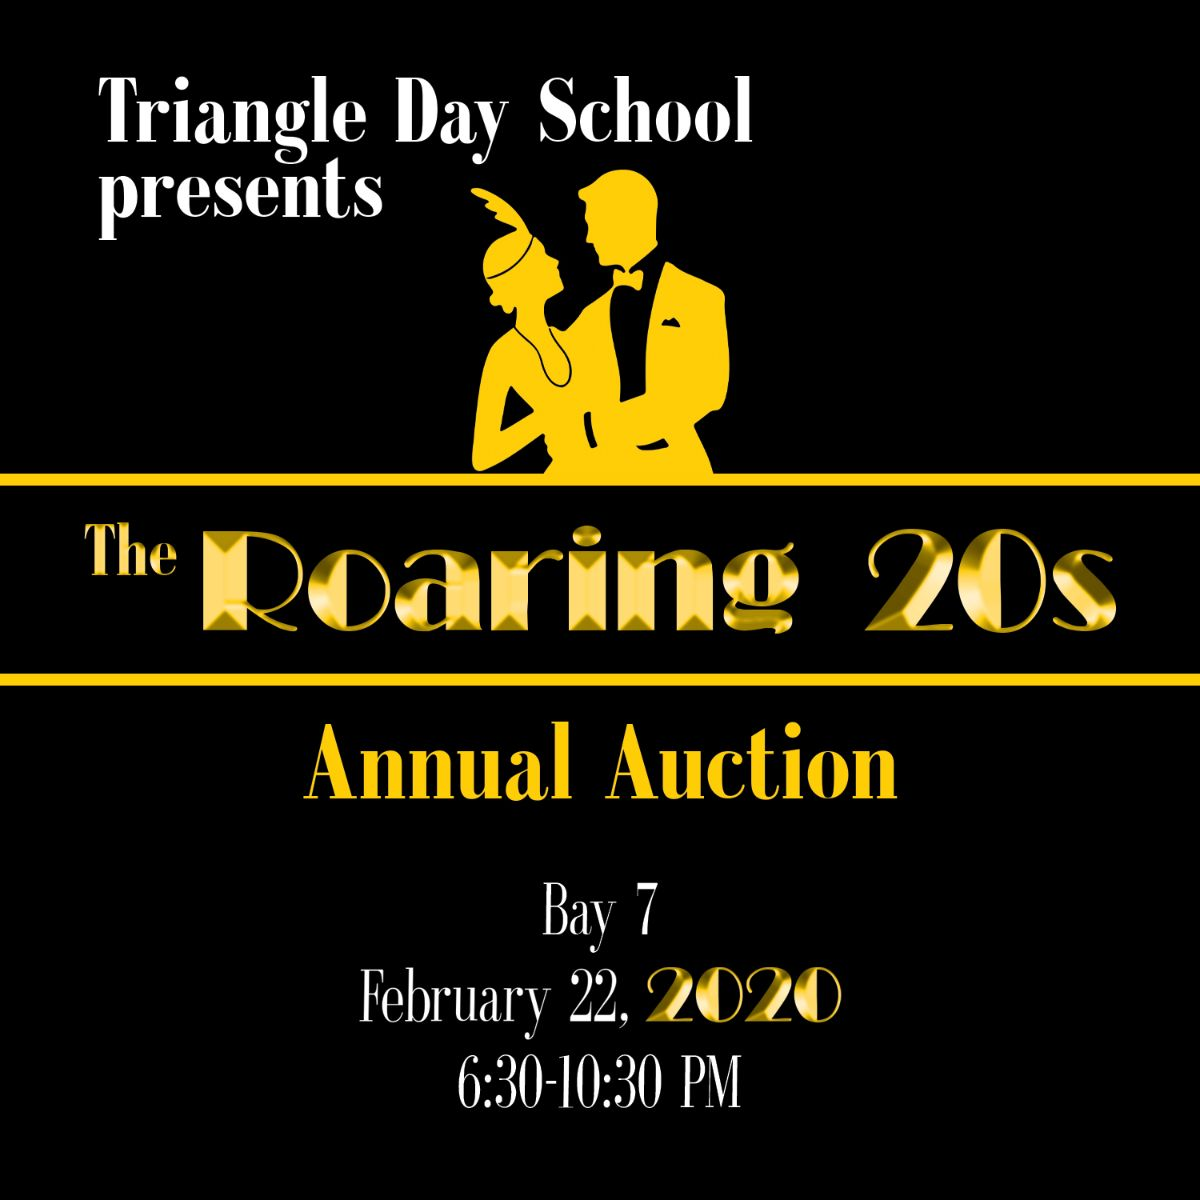 TDS 2020 Annual Auction - Save the Date! - bit.ly/31eJIHd